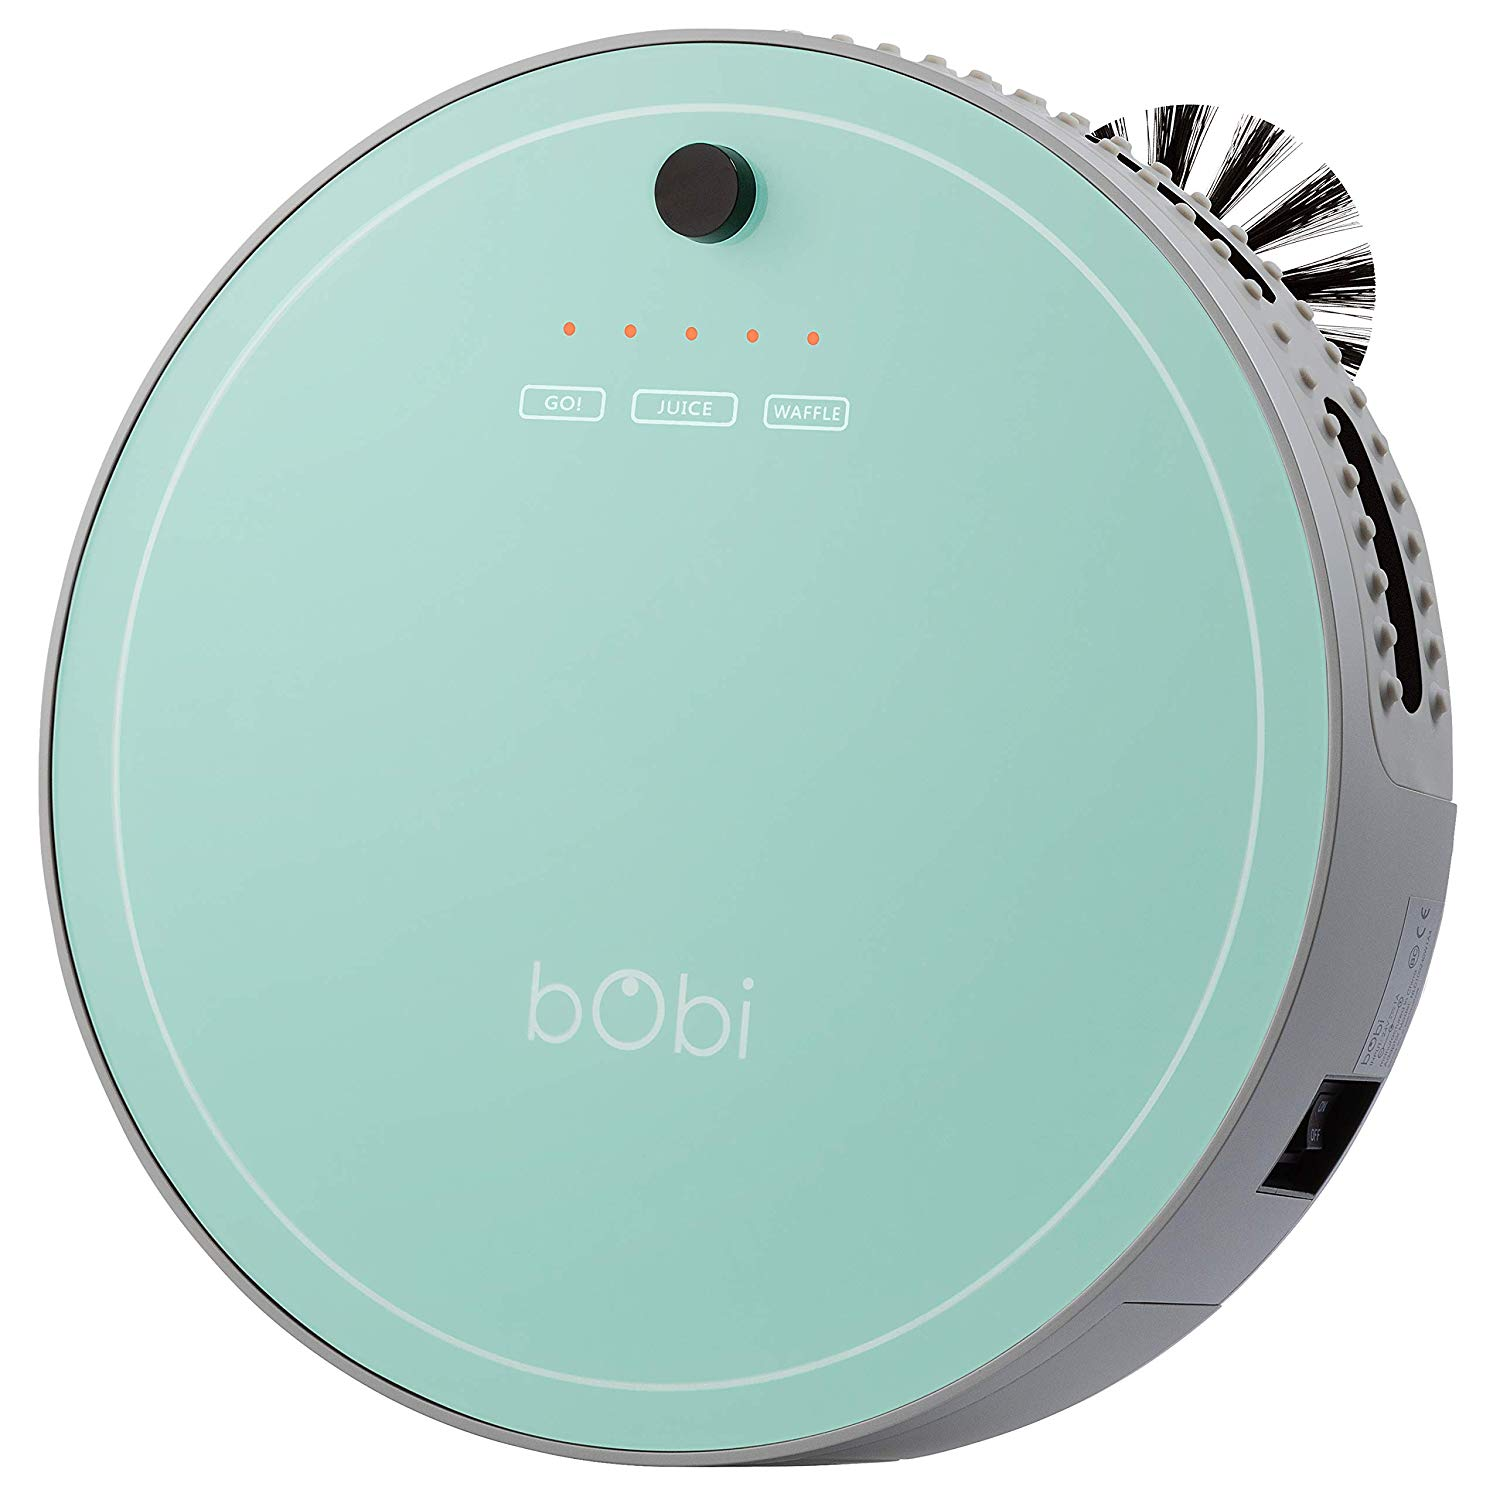 bObi Pet Robotic Vacuum Cleaner, Mint